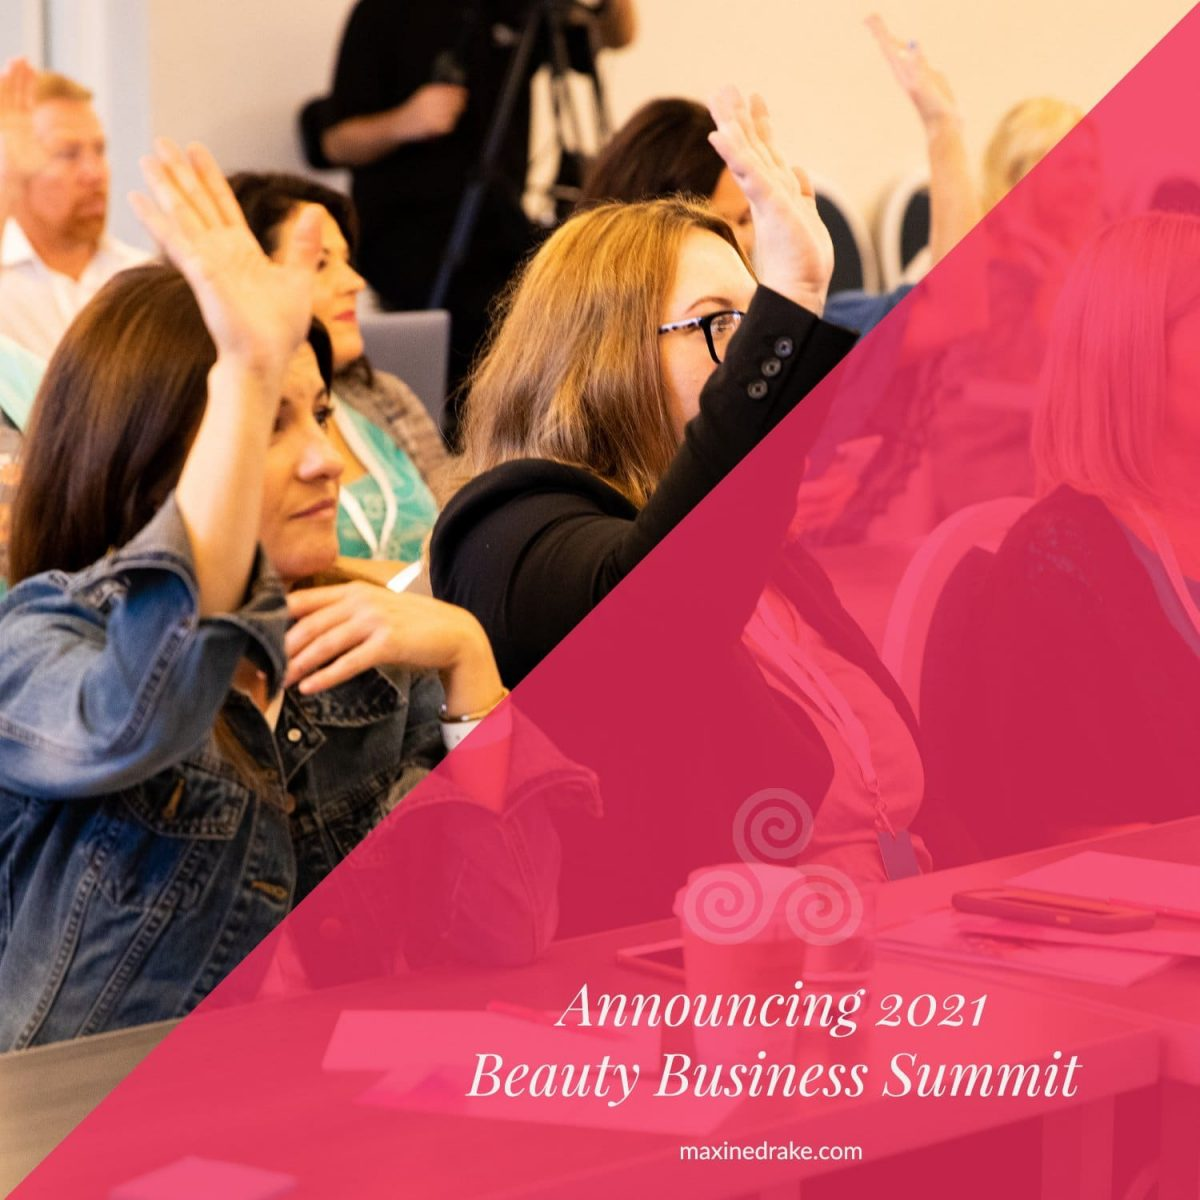 nnouncing the 2021 beauty business summit